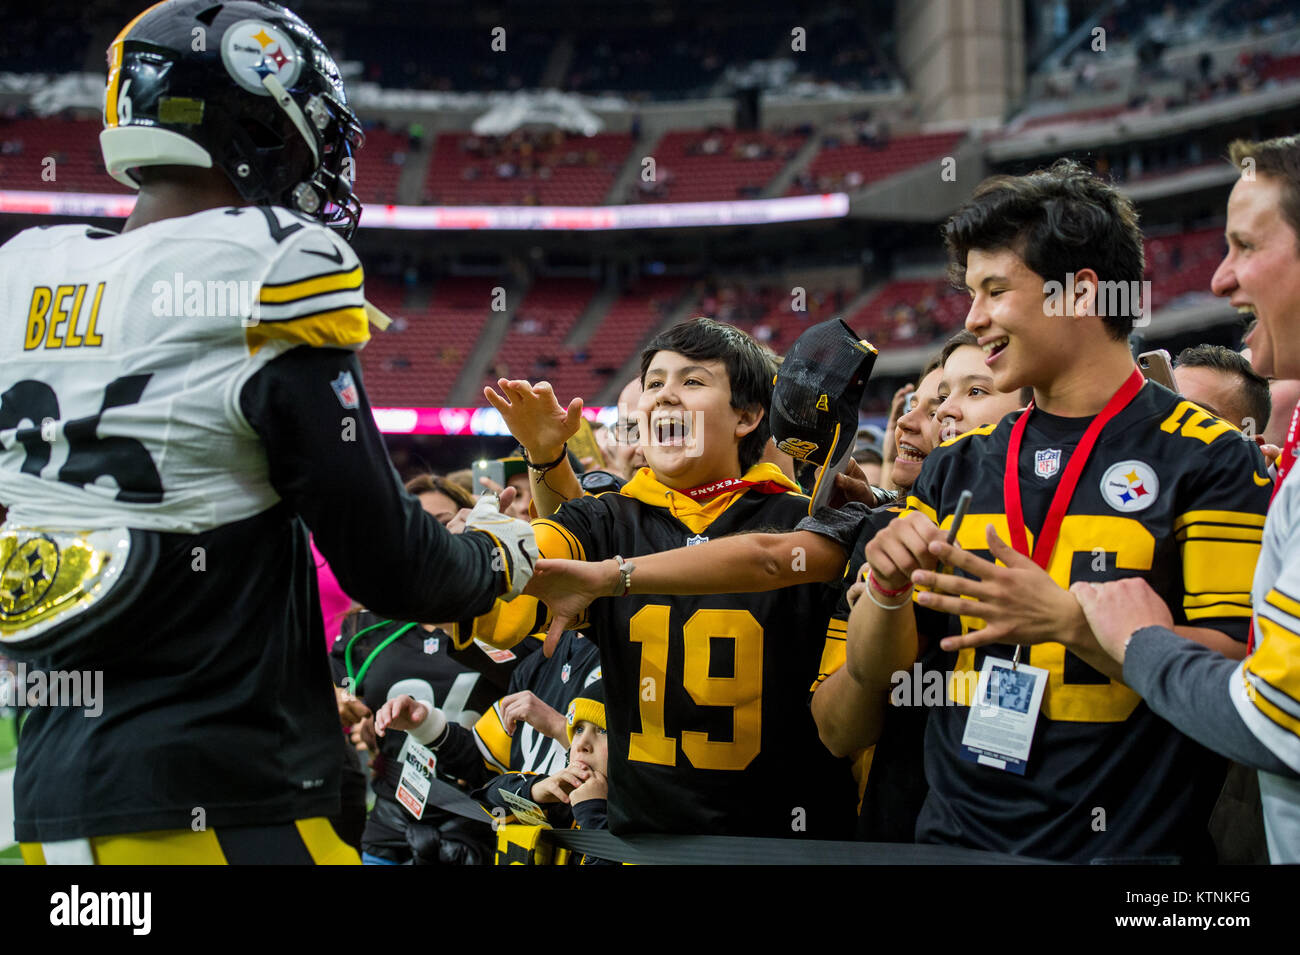 a0d5b48cca9 Pittsburgh Steelers Fans Stock Photos & Pittsburgh Steelers Fans ...